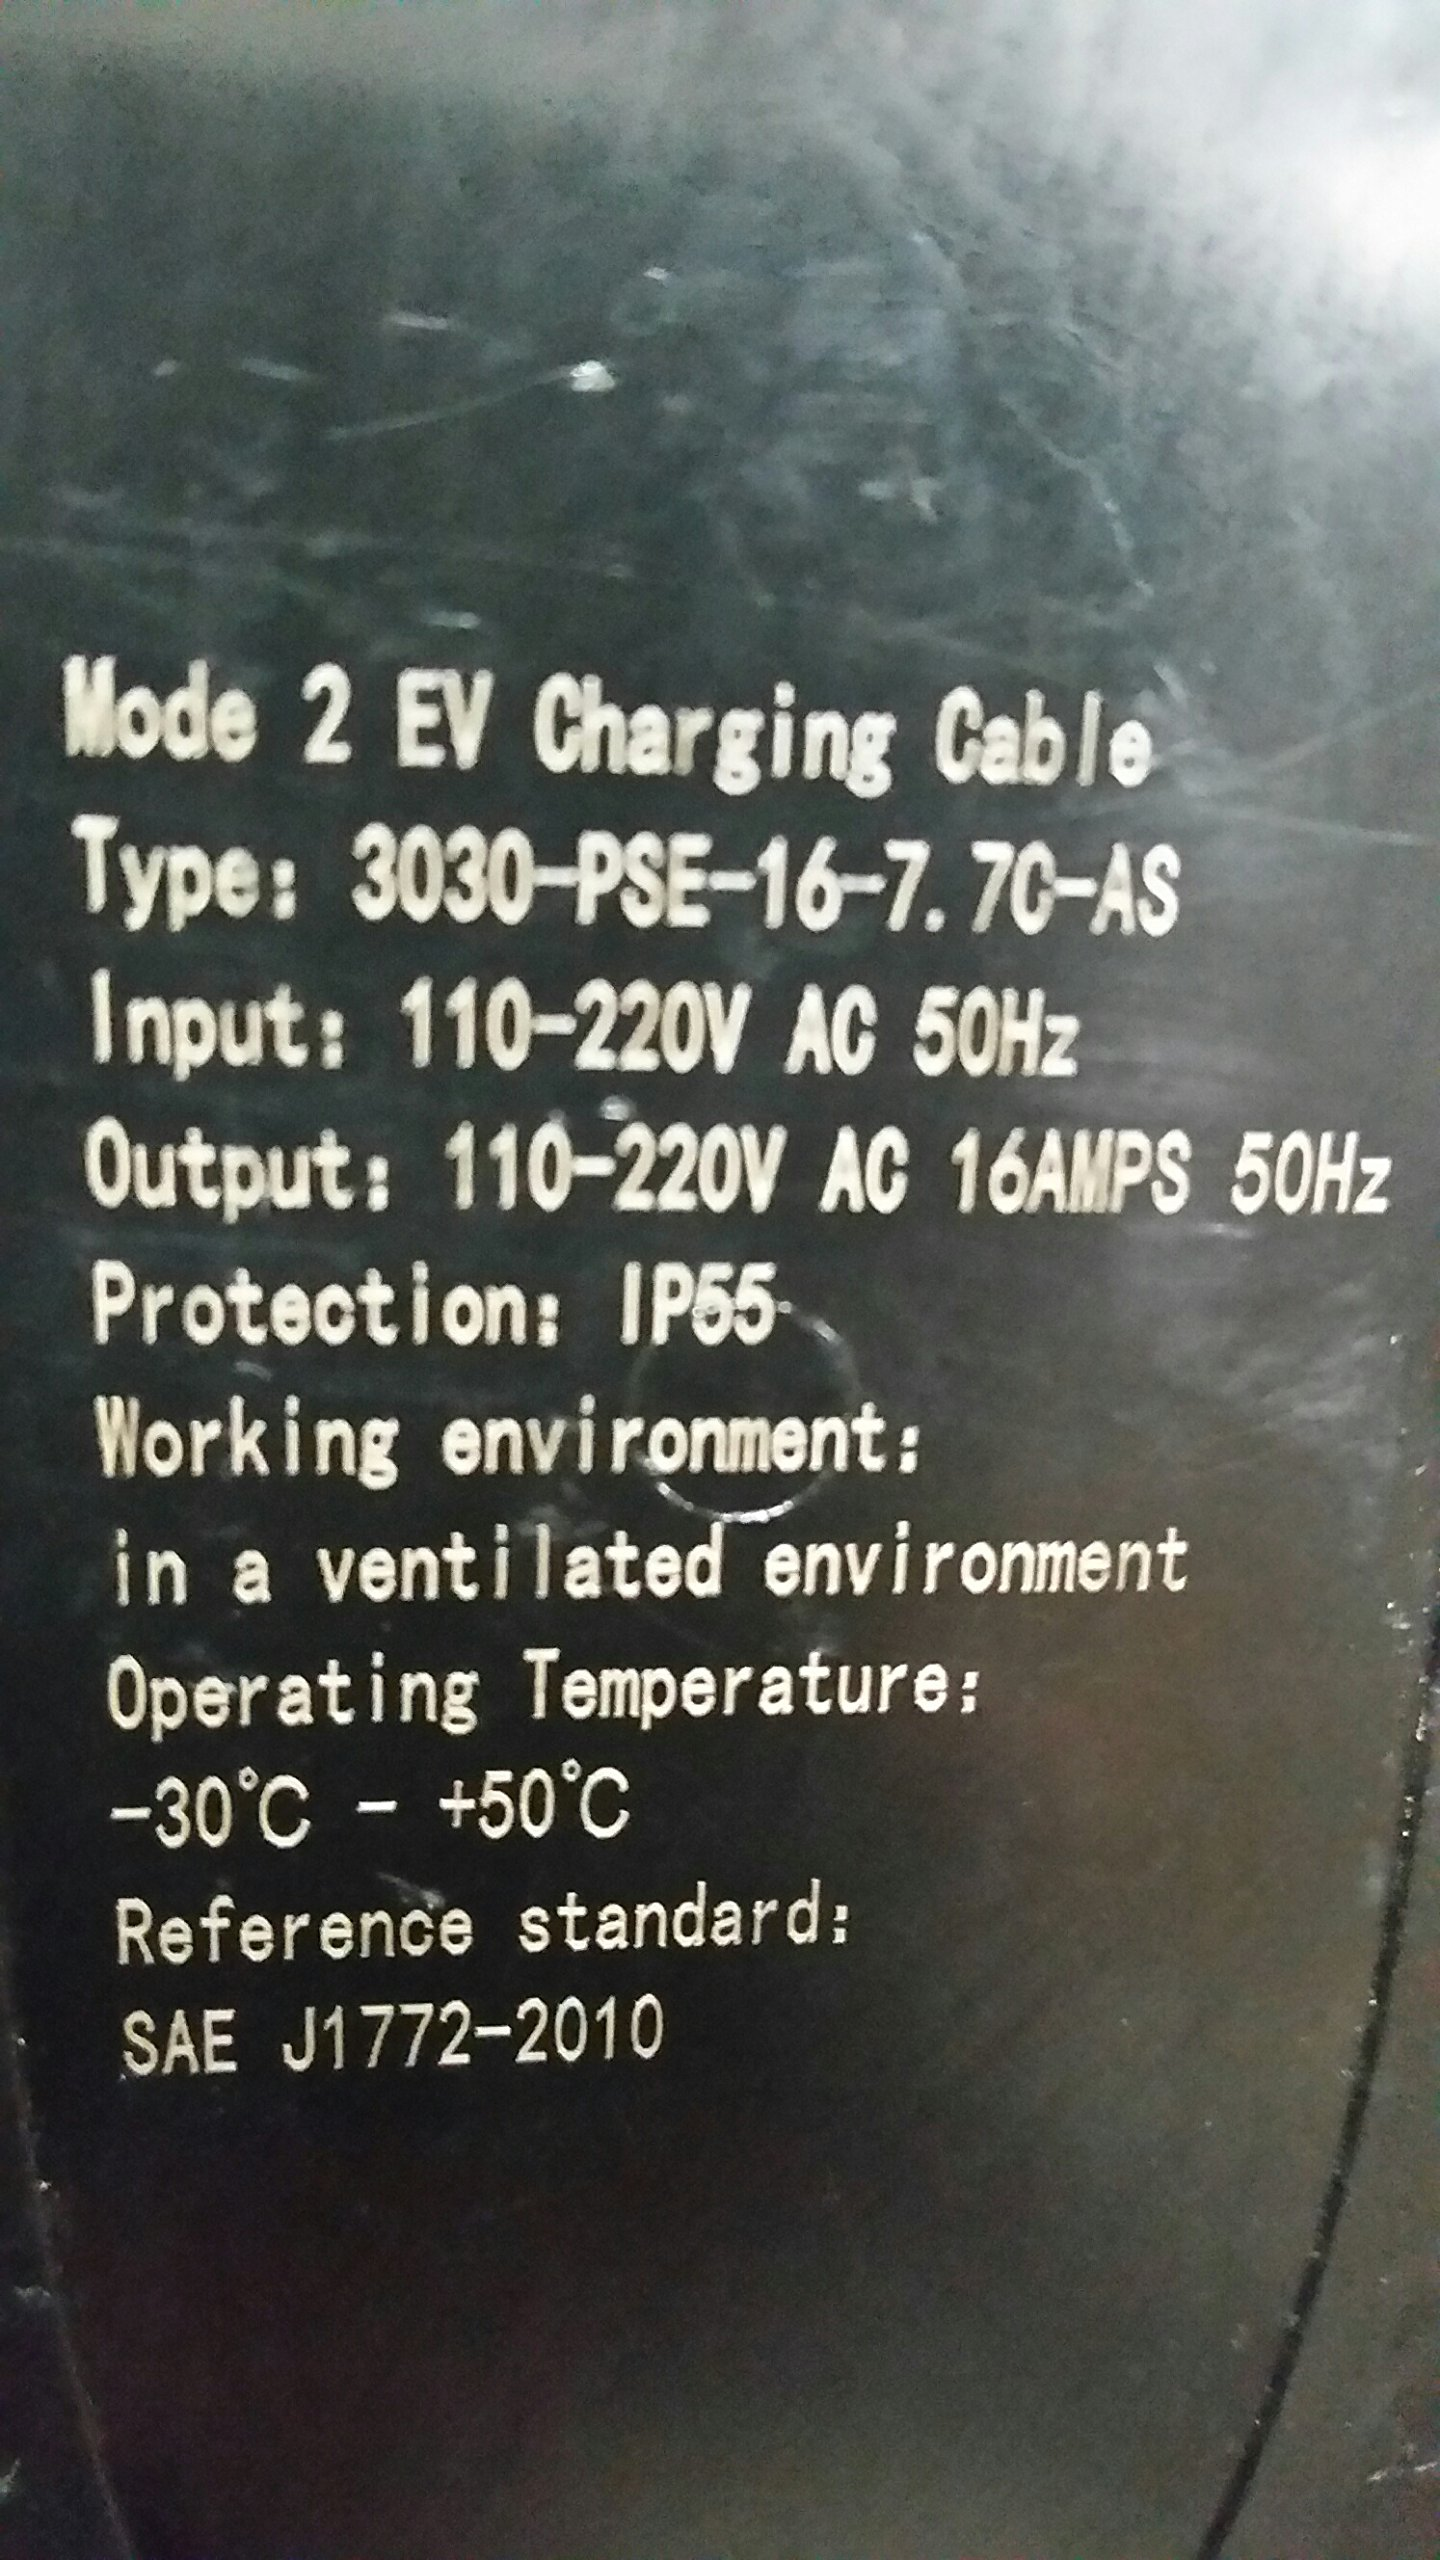 EV Charge Solutions Portable Electric Vehicle Charger EVSE 220-240v Level 2 Nema 6-20 Plug To J1772 25' Station for EV Charging (1 Year Warranty!) 2-Day Priority Shipping !!! by evCHARGEsolutions.com (Image #7)